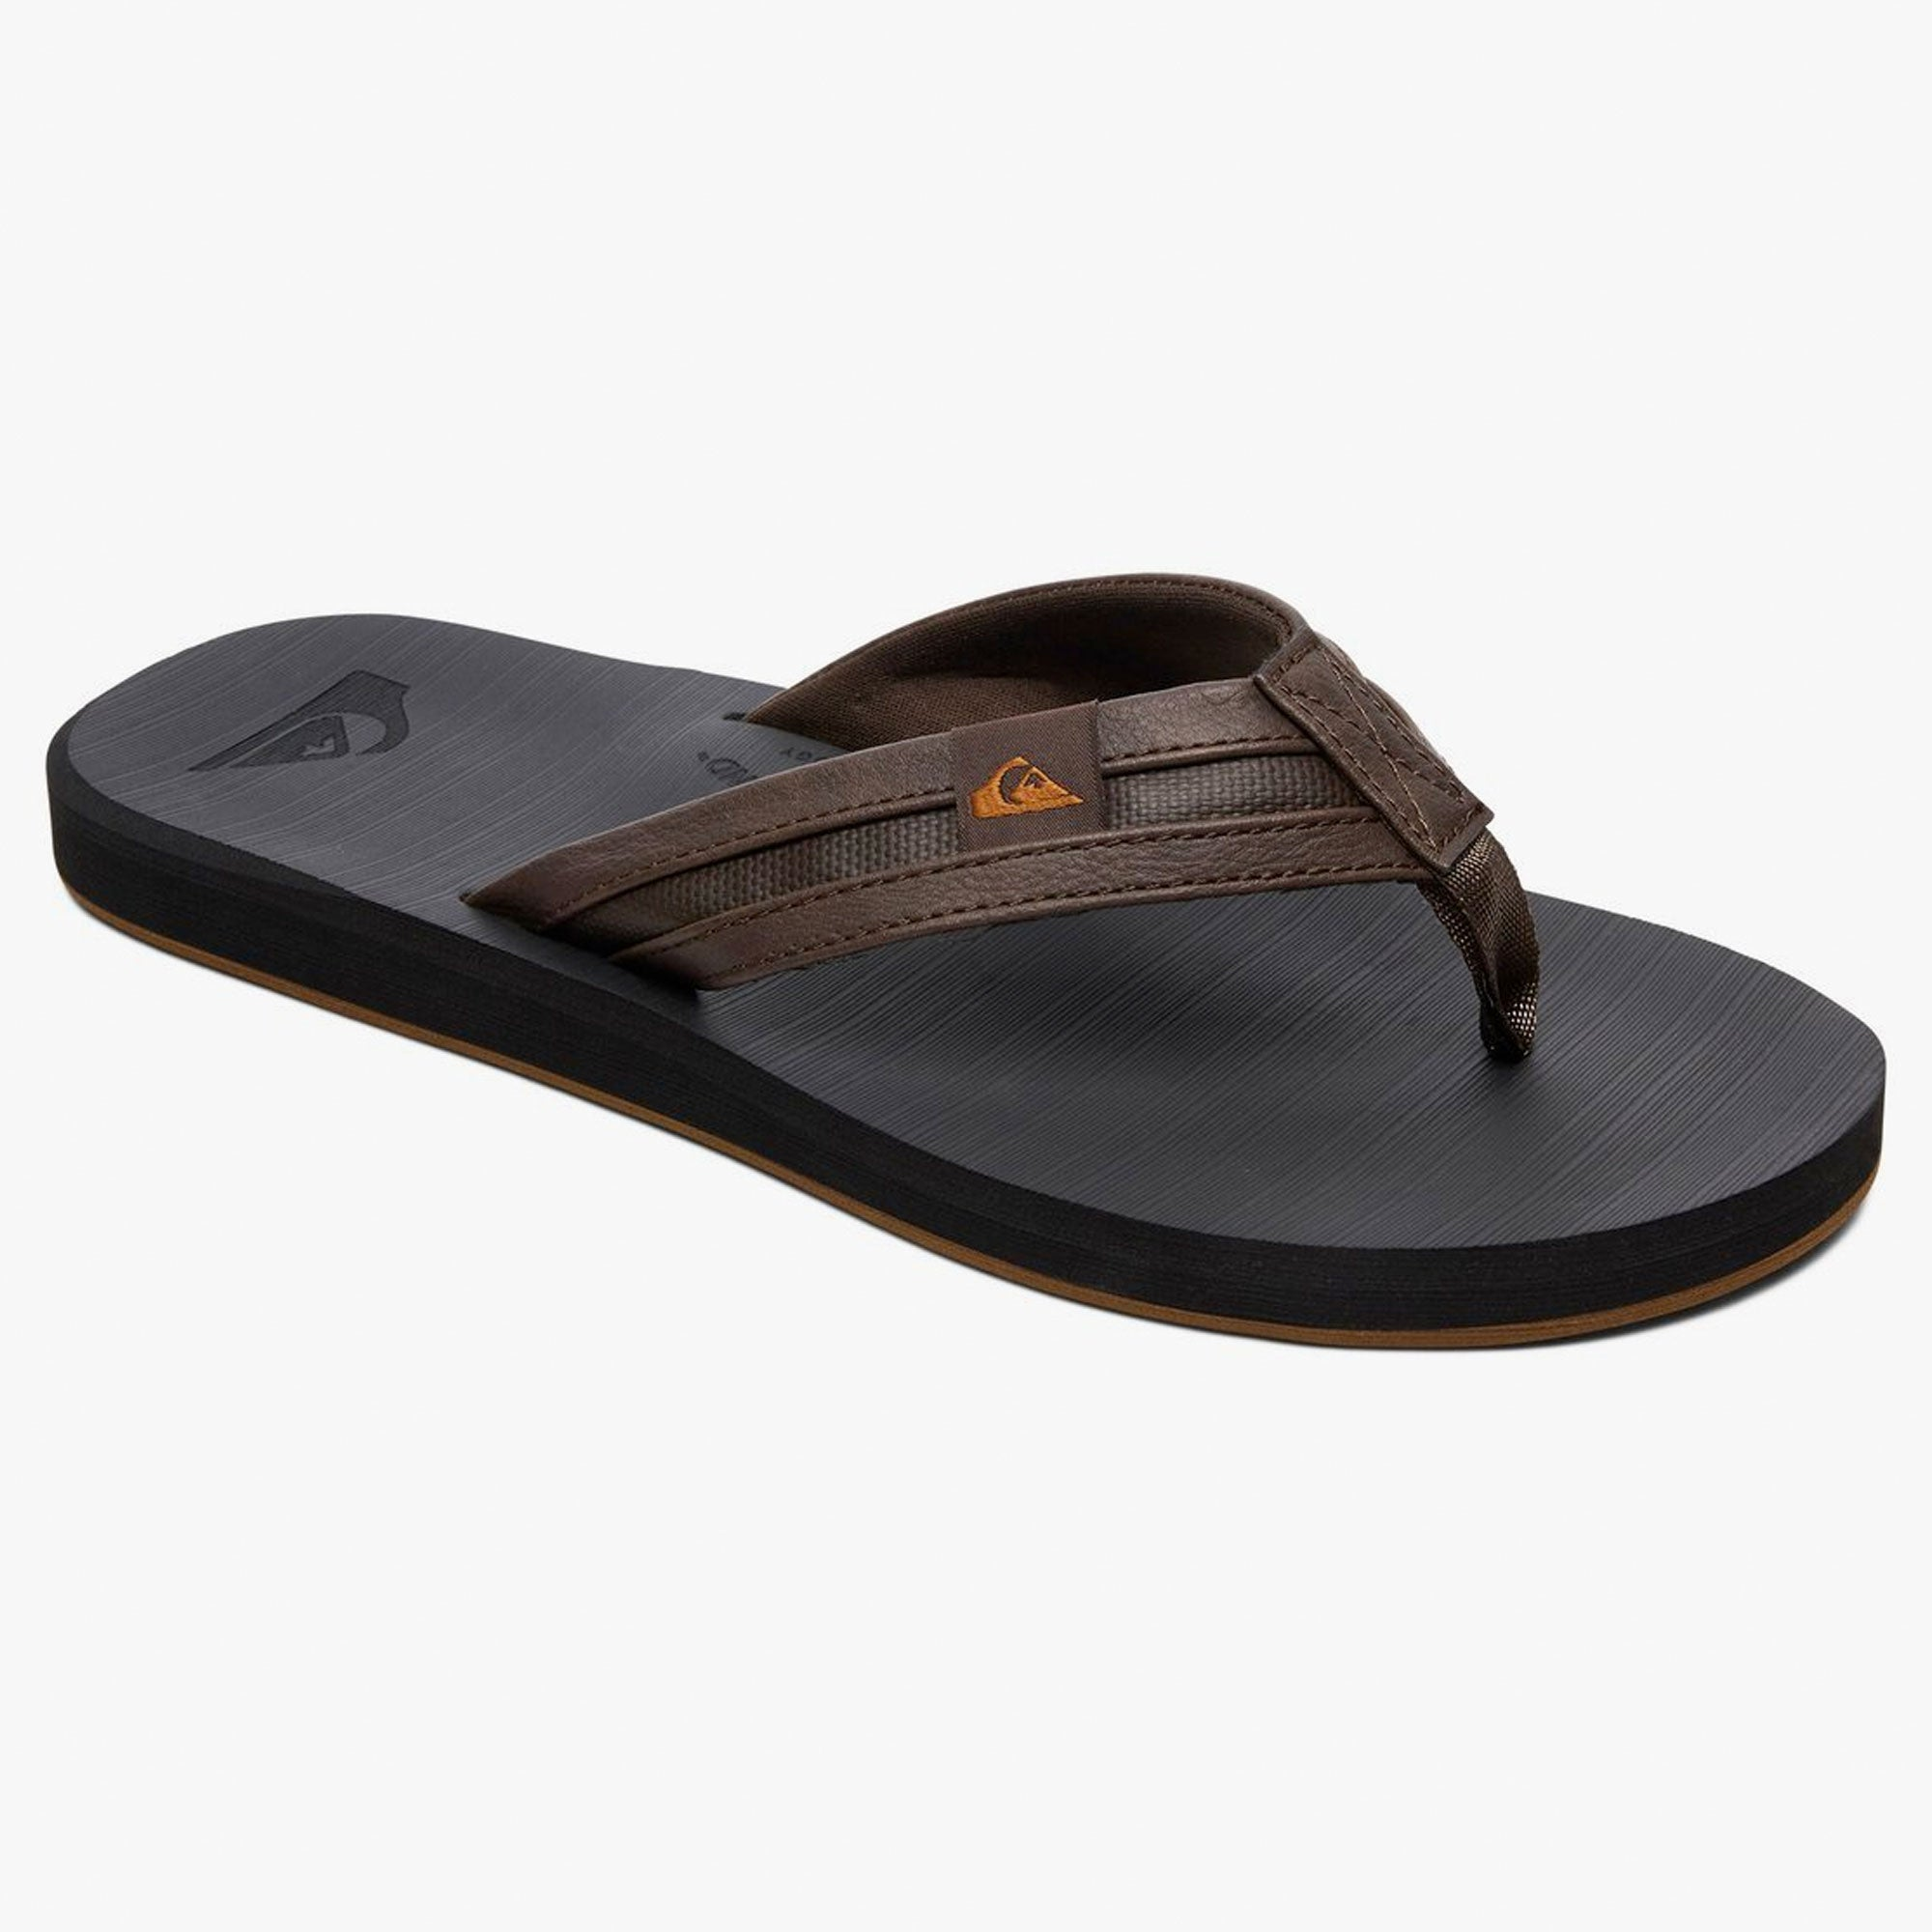 Quiksilver Carver Squish Men's Sandals